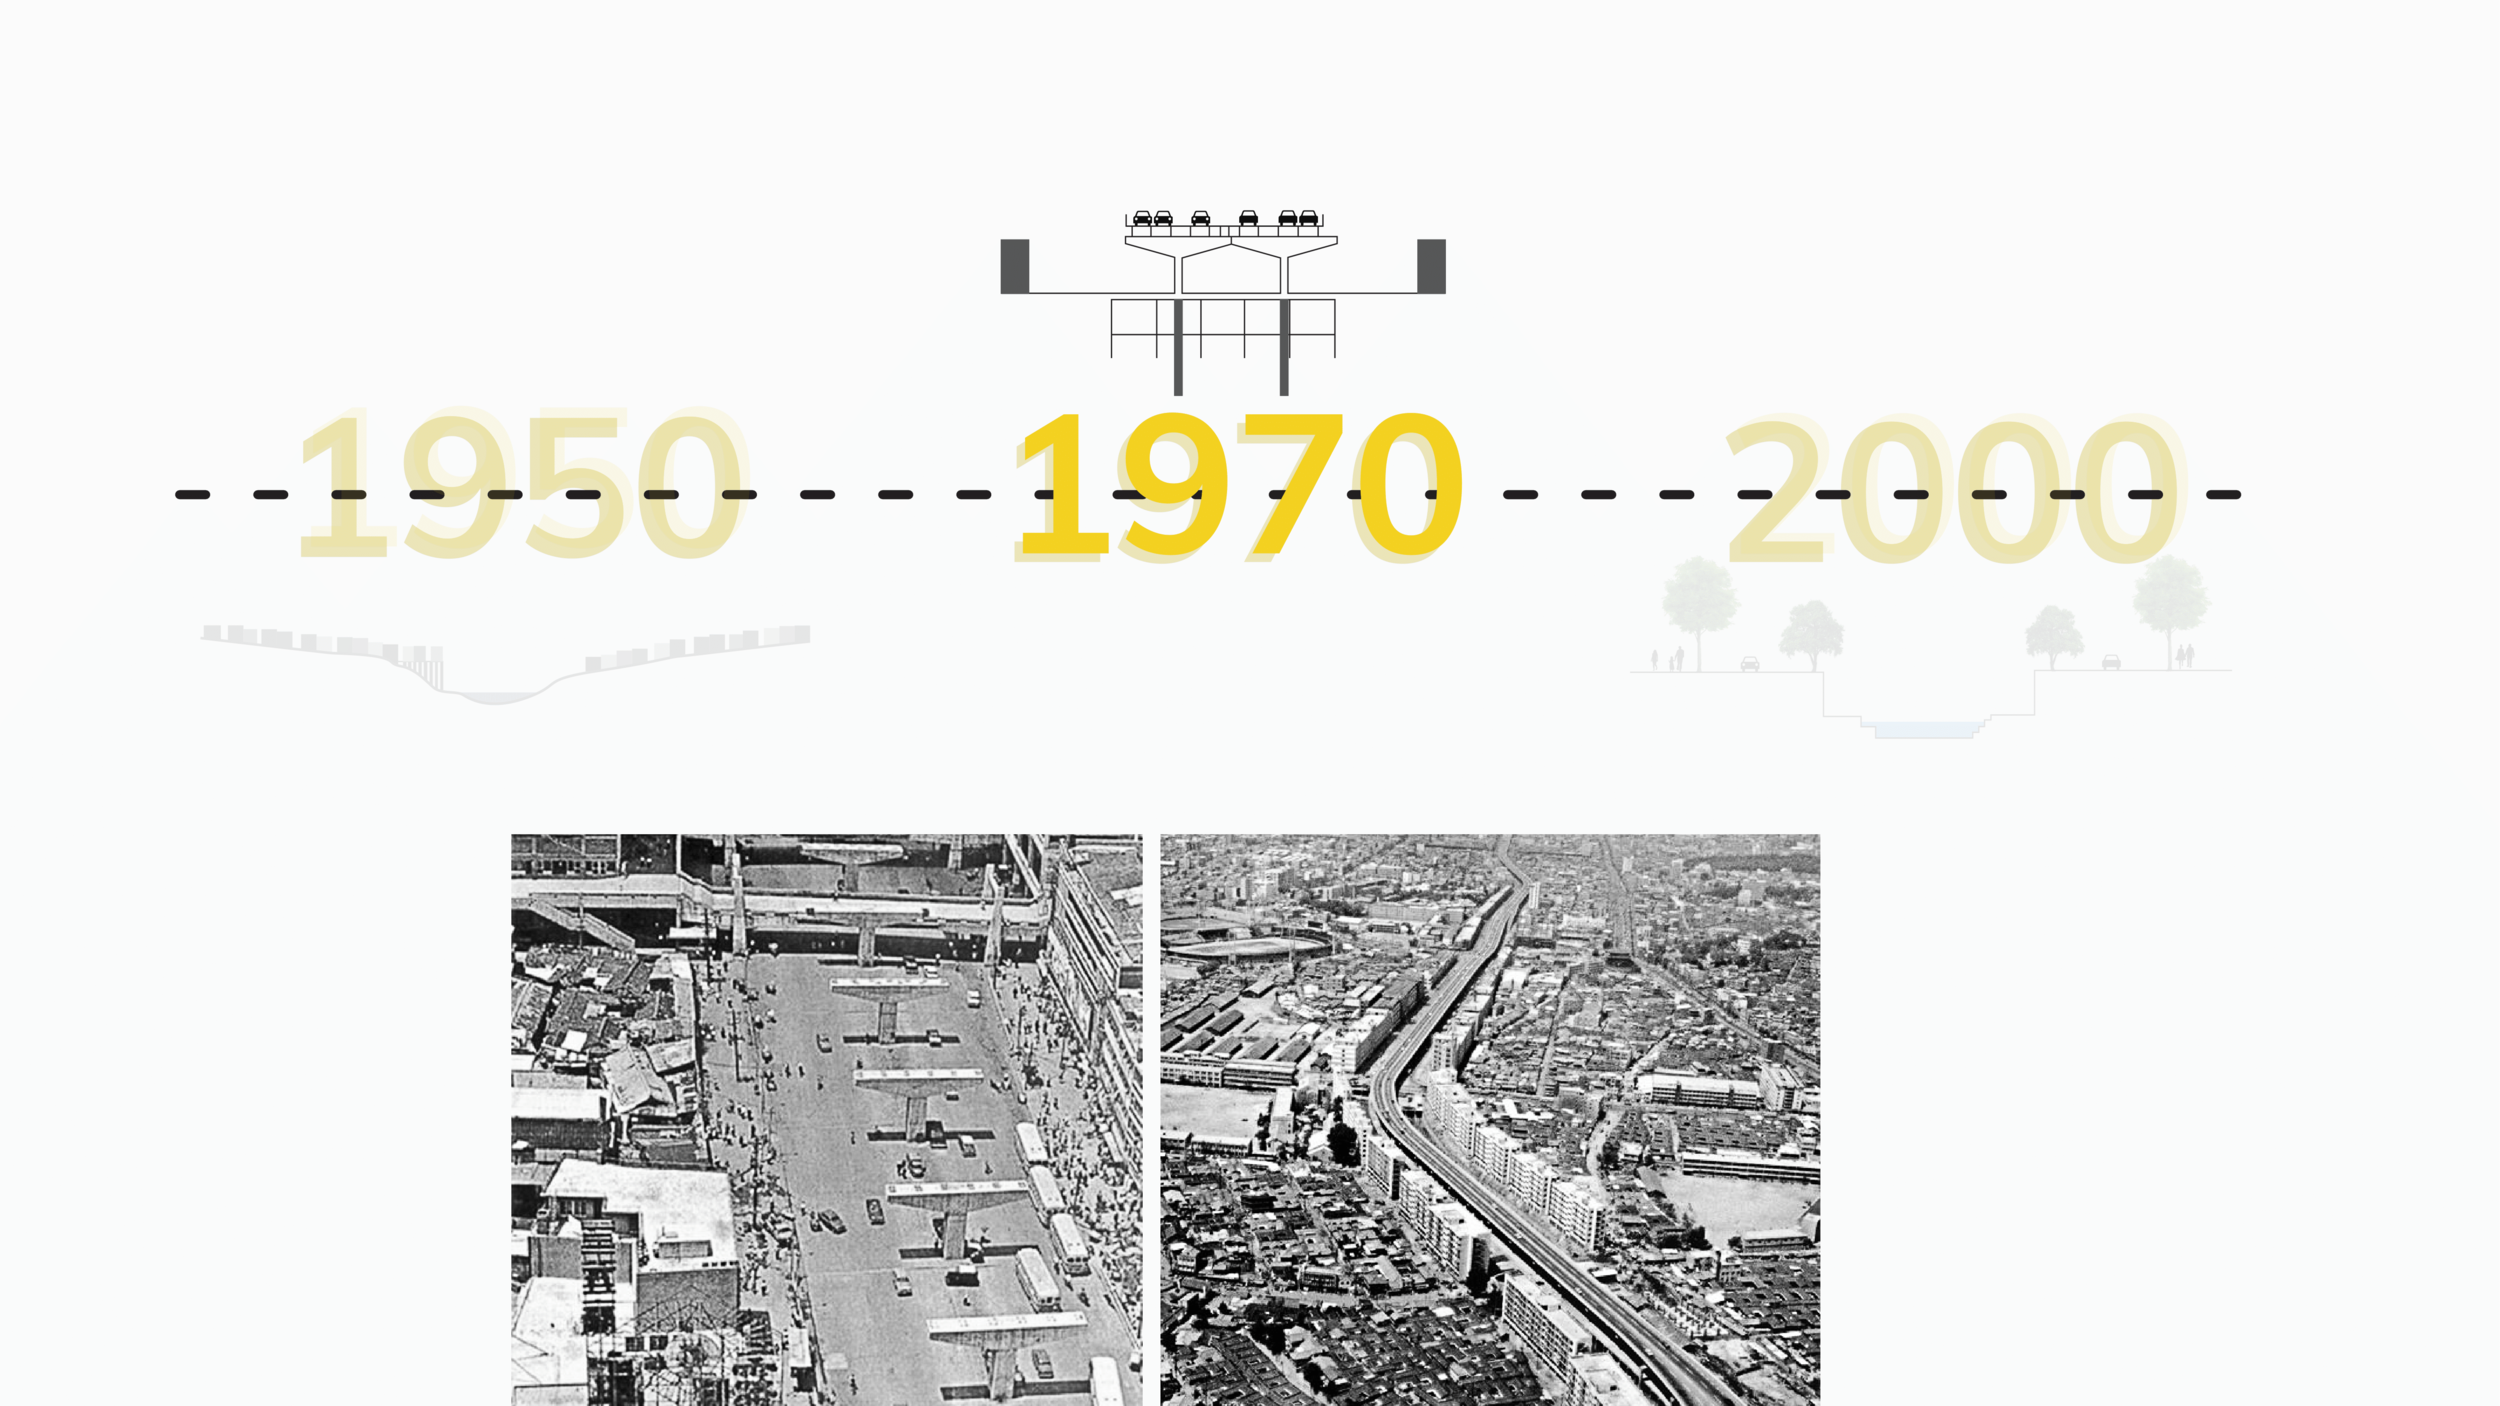 design decision - Use diagram and photos to show the structure of the bridge at Cheonggyecheon area in 1970s. Using the timeline will allow our slides transition easily from one to another (the slide on the right) and tell a better story of the history of Cheonggyecheon area.